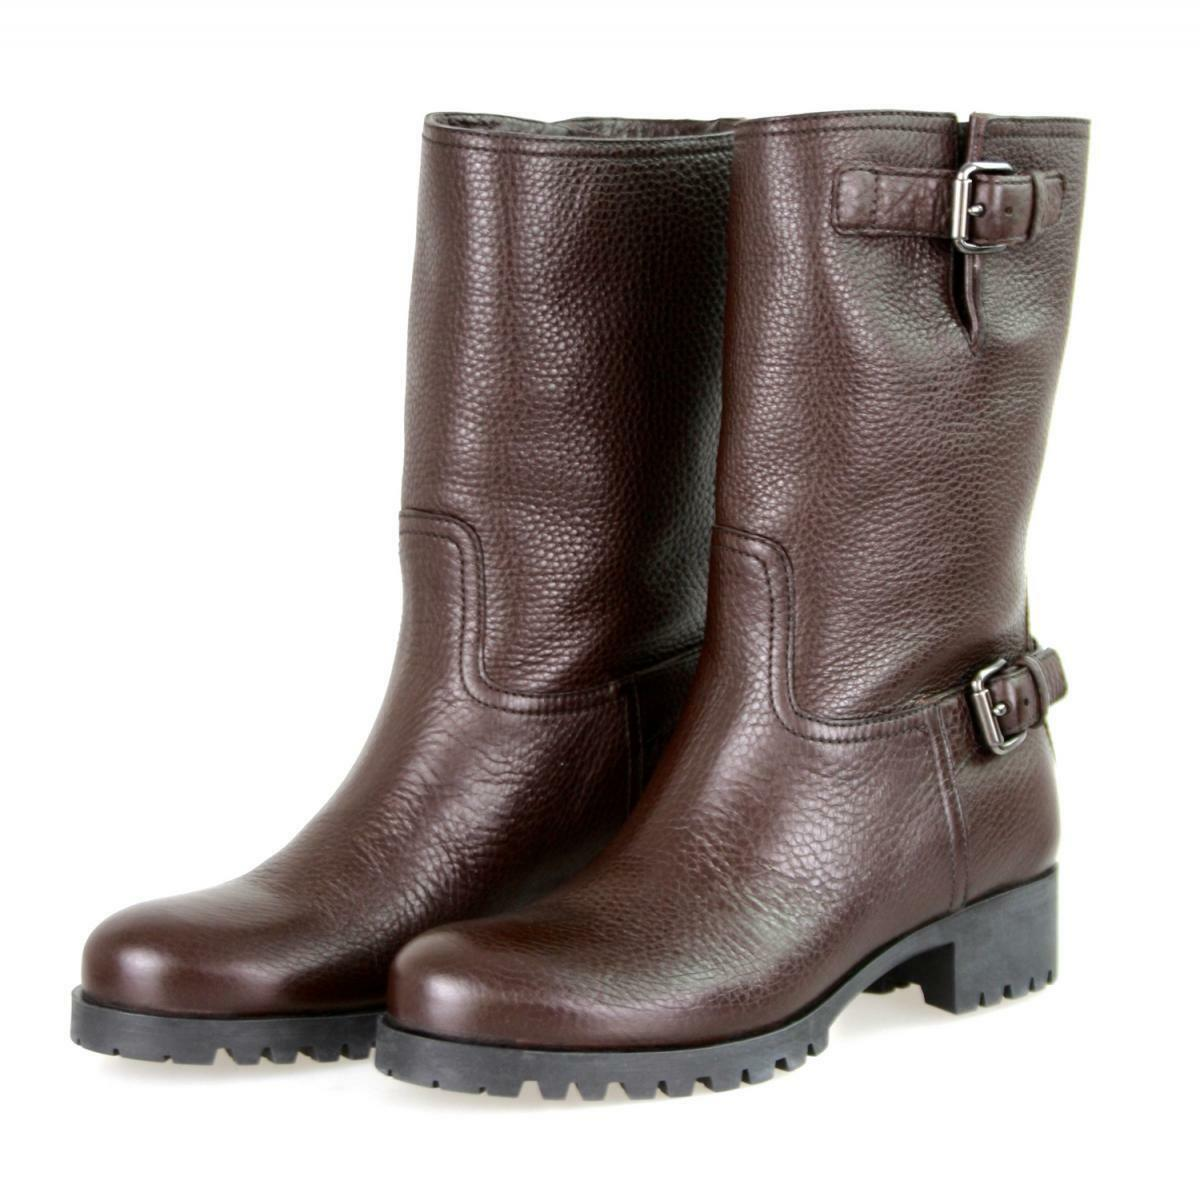 AUTHENTIC LUXURY PRADA HALF-BOOT SHOES 3U5785 BROWN NEW 37 37,5 UK 4